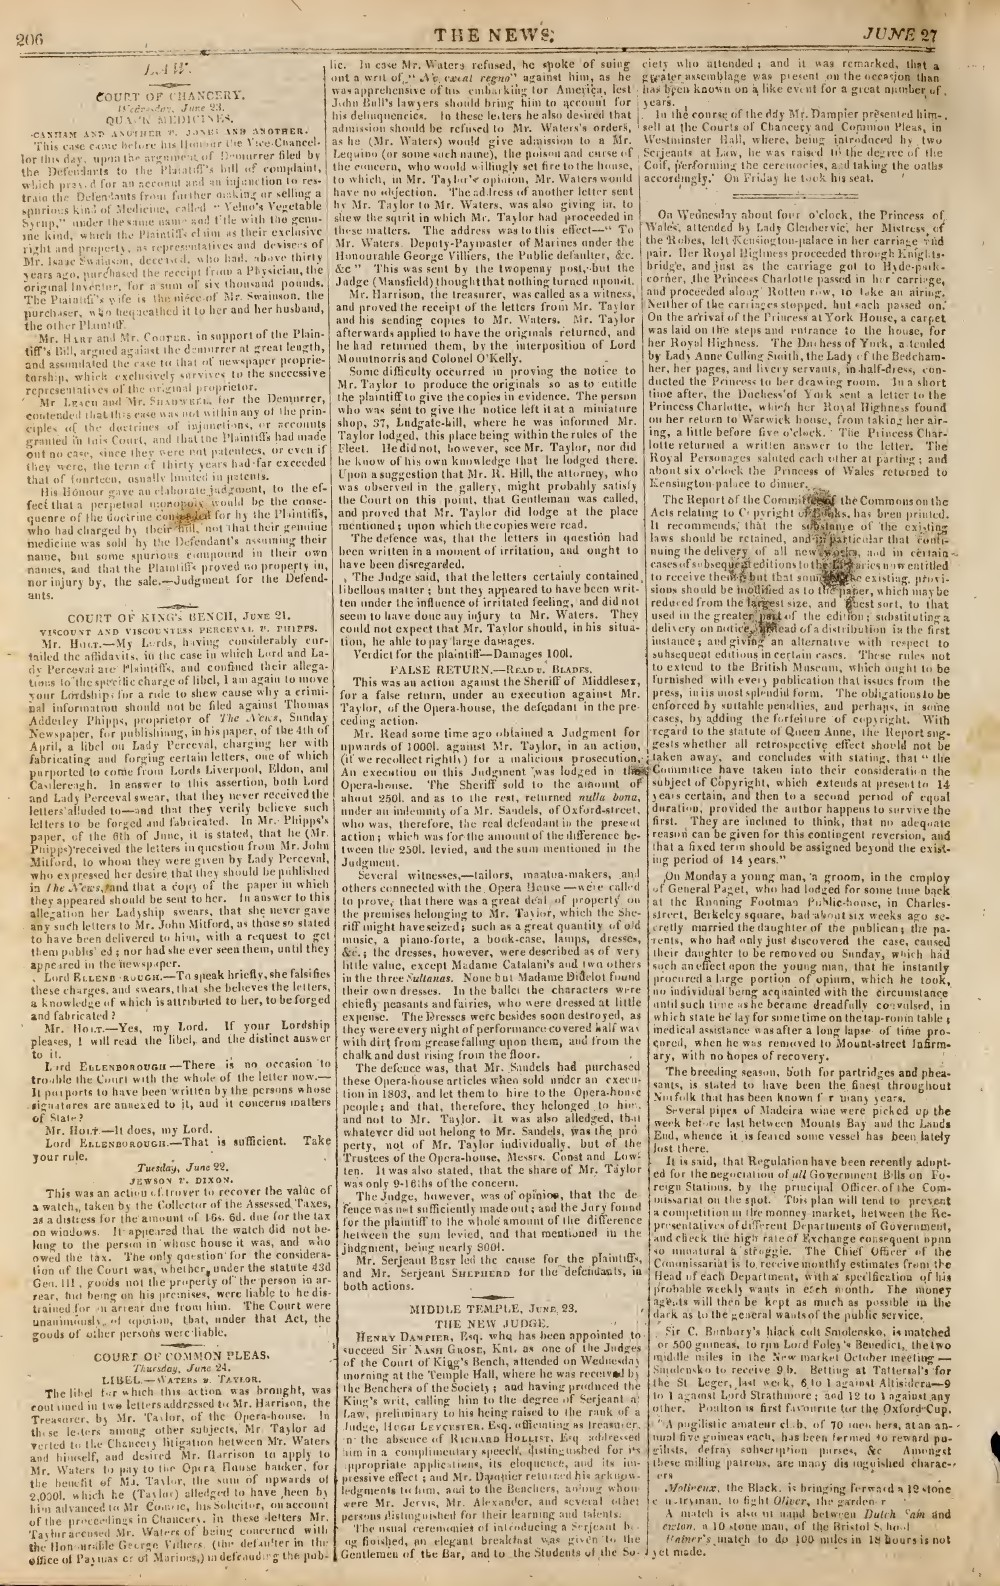 The News, 27 June 1813, No. 419